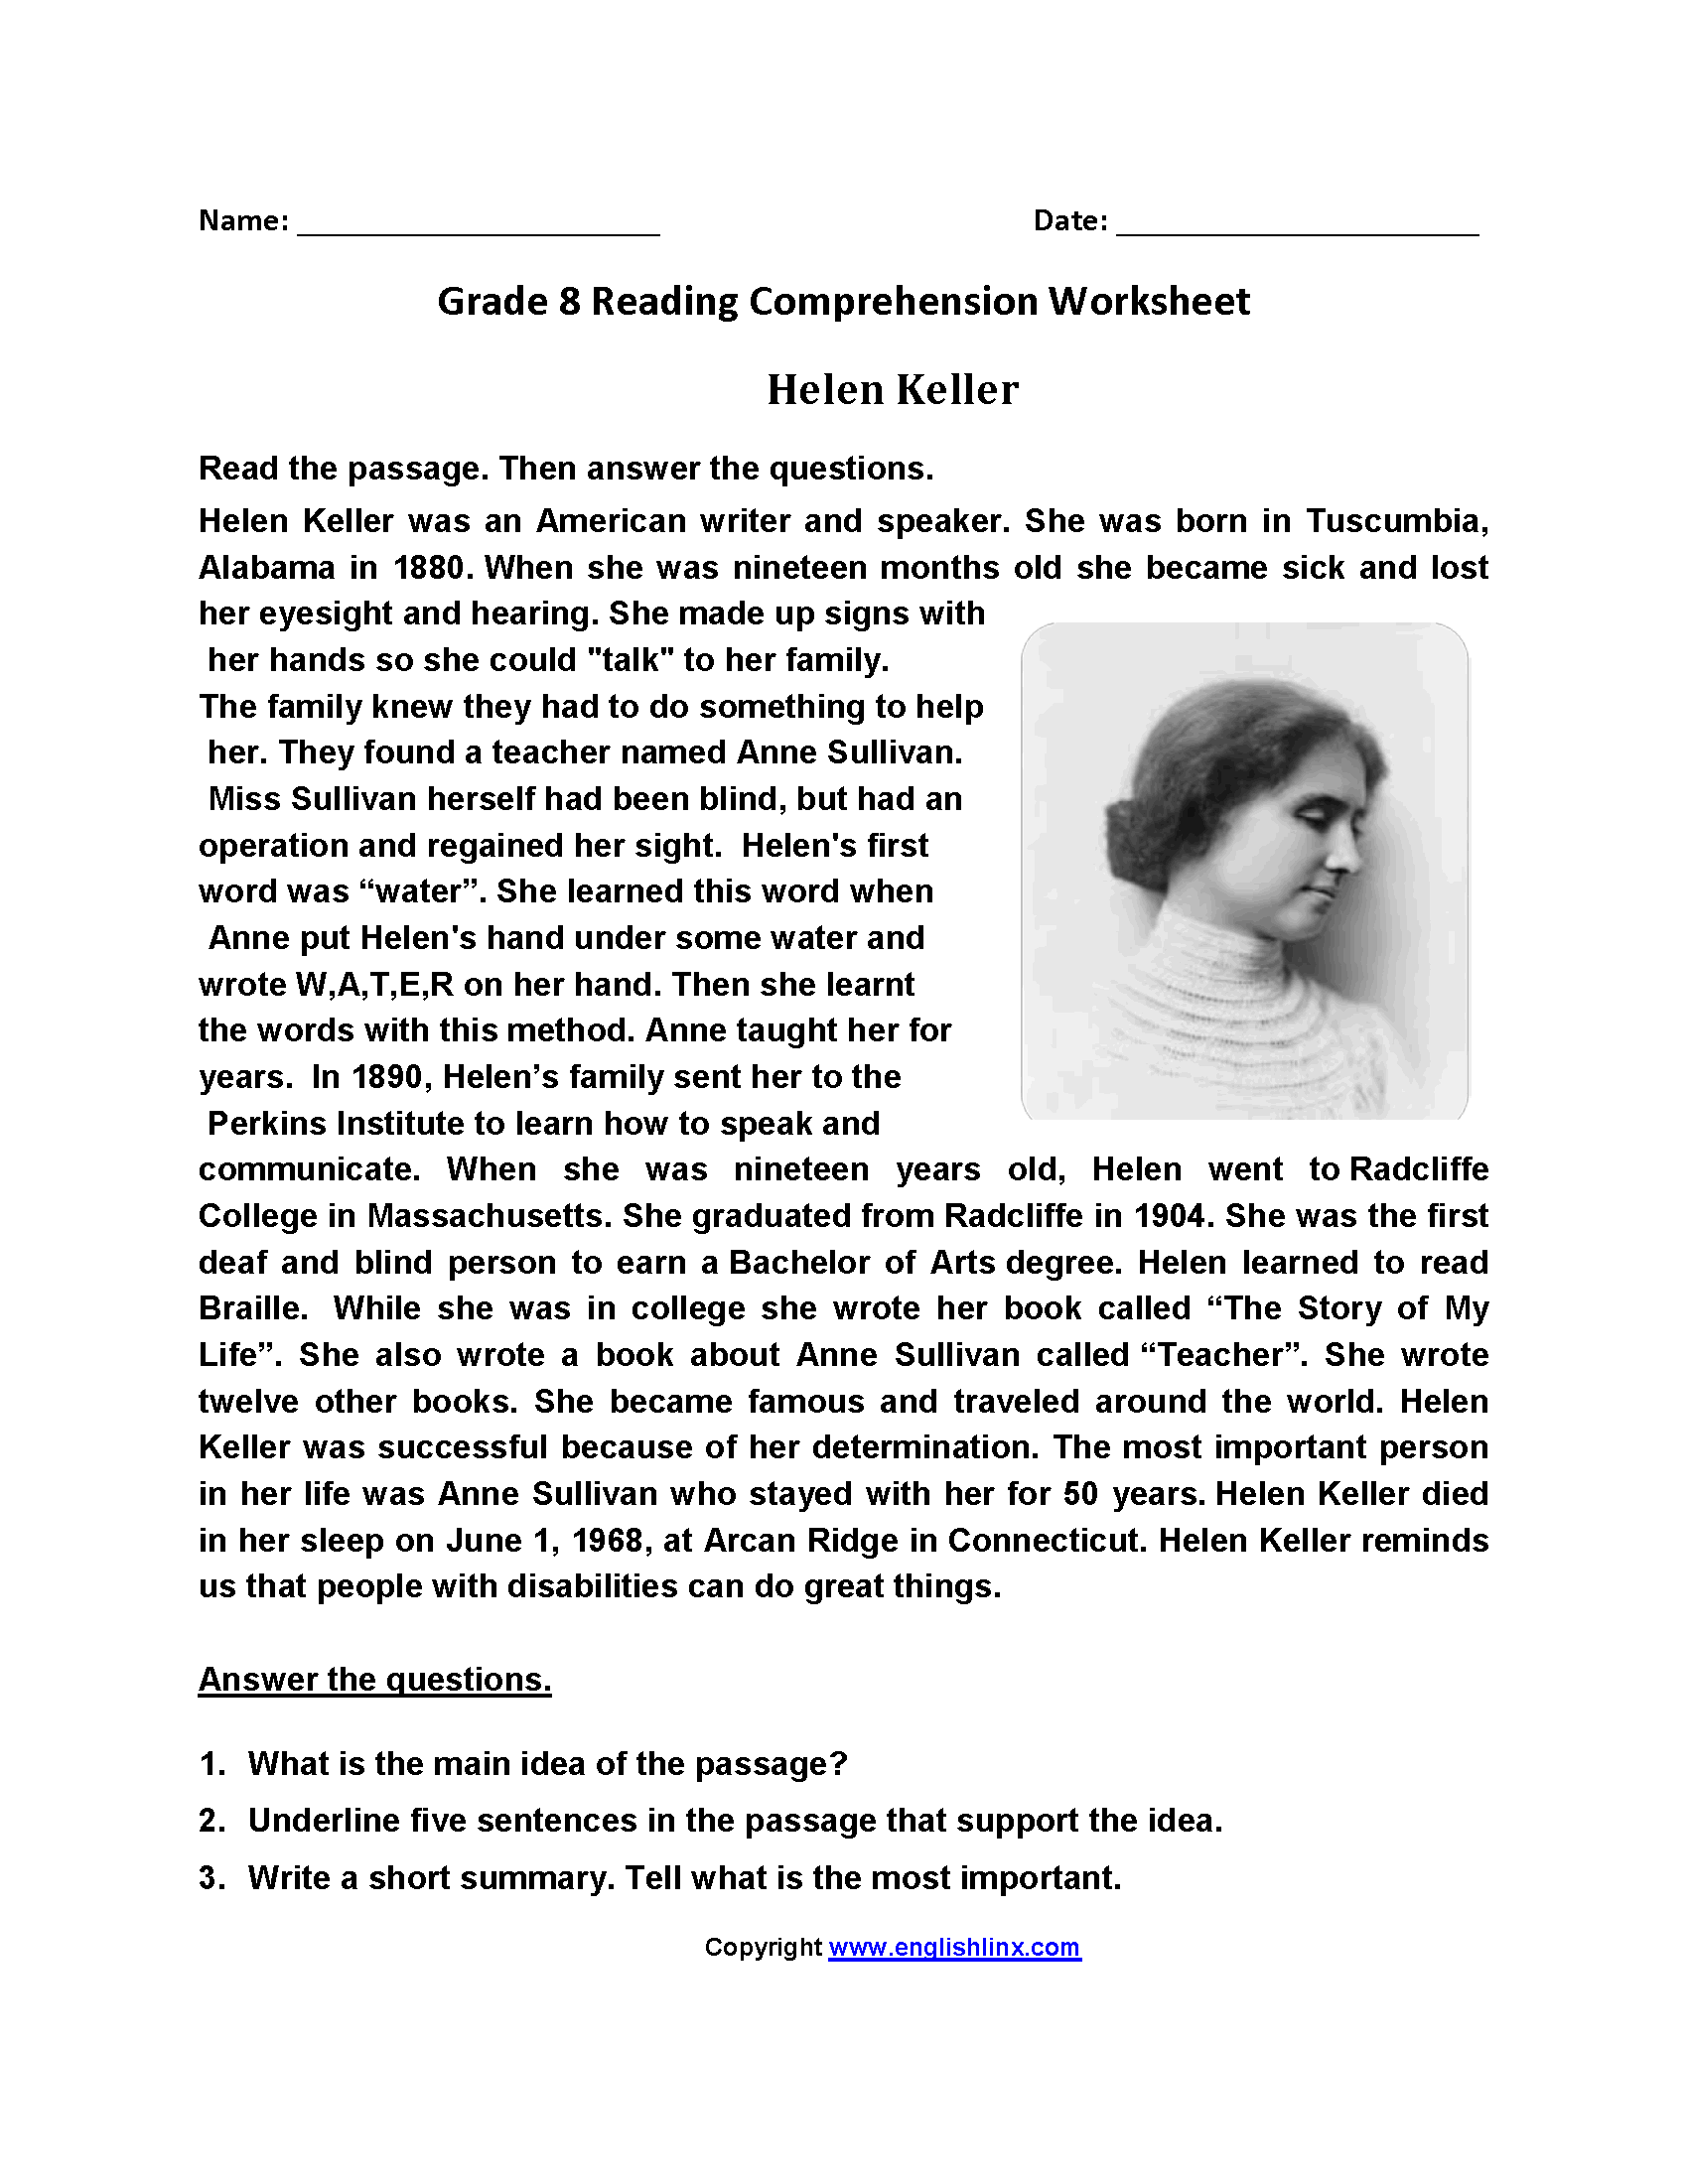 Worksheet Helen Keller Worksheets Grass Fedjp Worksheet